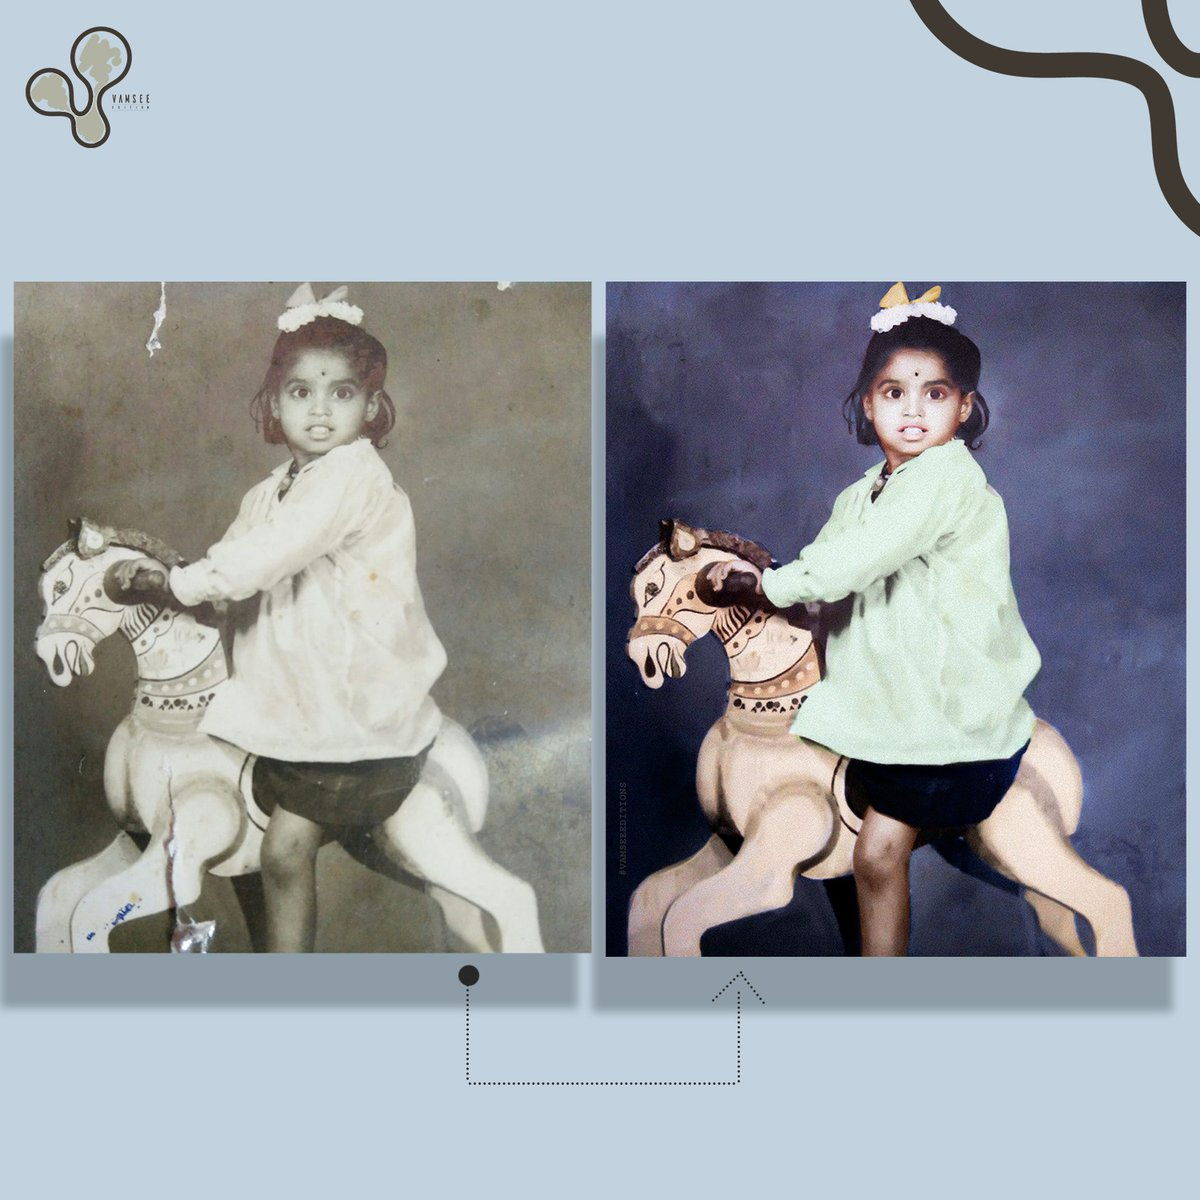 Old Photo is just not a piece of paper. It's a Memory and it can Recreate now . in color. . . . . . . . #photoretouch #oldphoto #oldphotorestoration #oldphotography #adobephotoshopcc #vamseeeditionpic.twitter.com/Udycx0AUsp